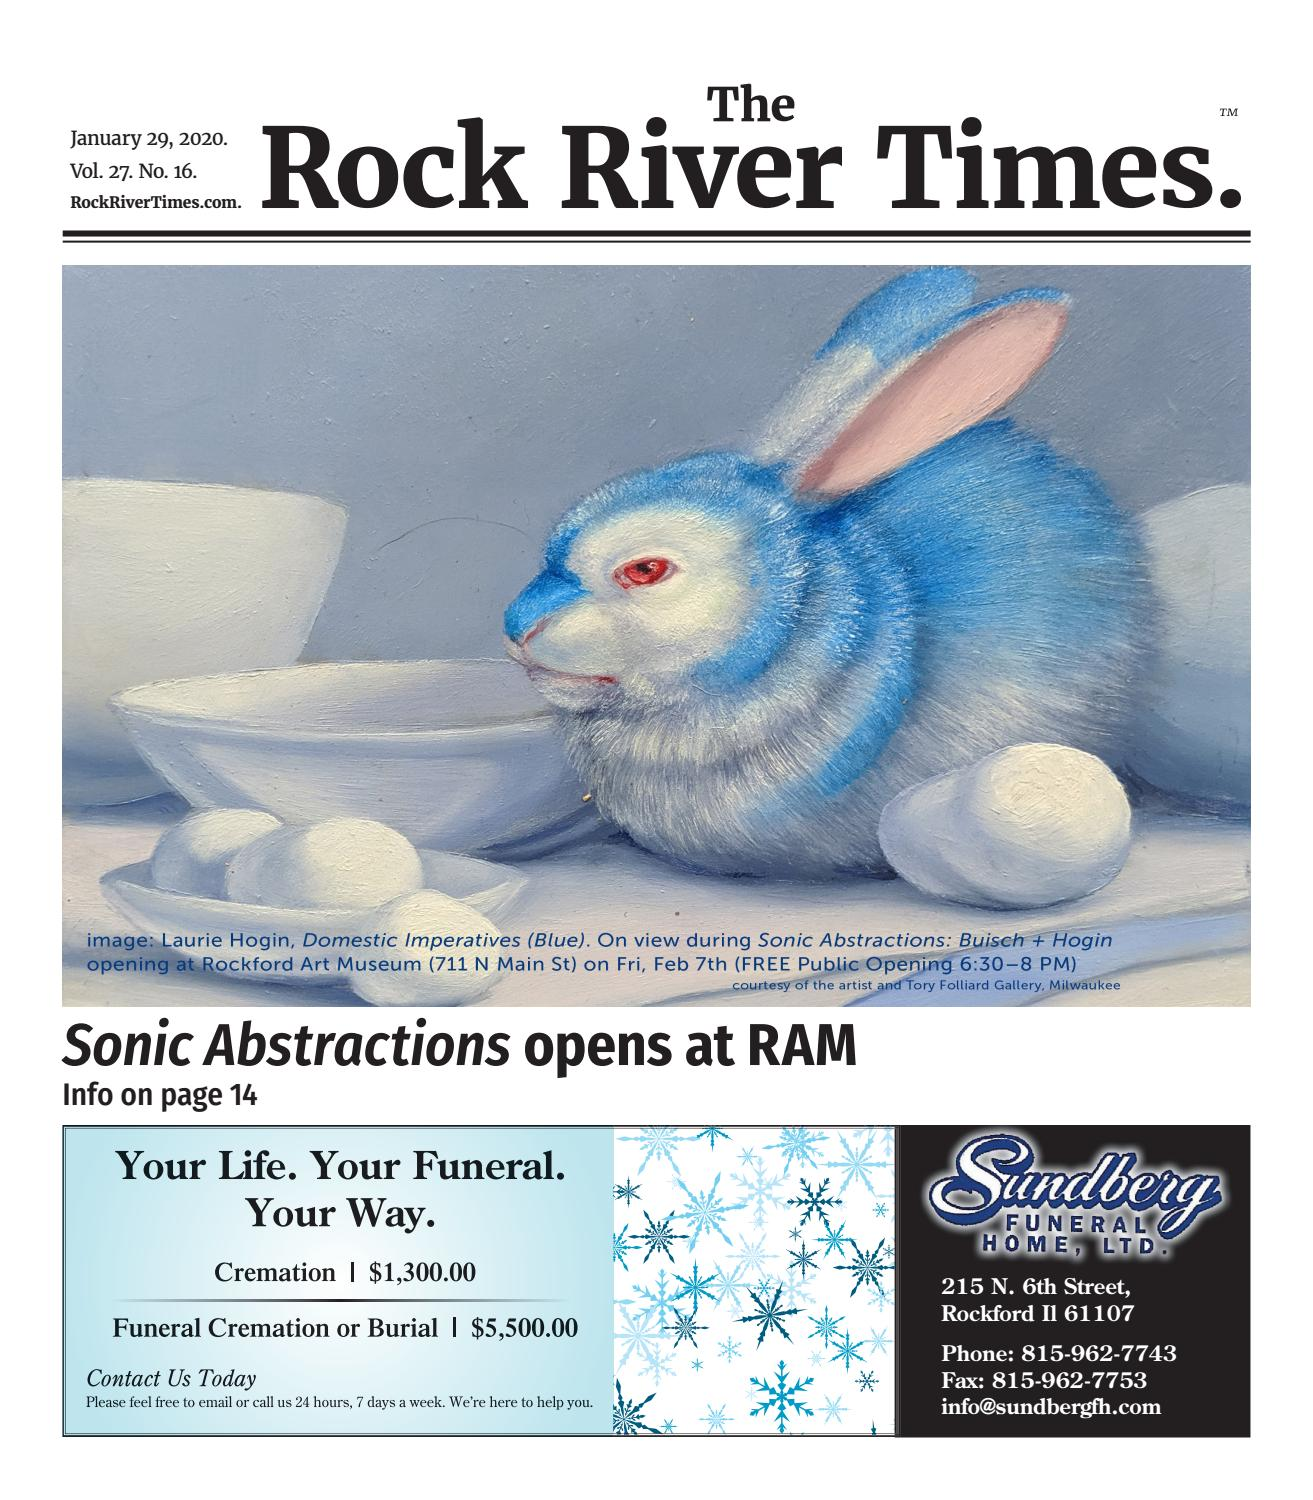 decortive ester ccents easter rabbit decor bunny.htm the rock river times     january 29  2020 by rockrivertimes7 issuu  the rock river times     january 29  2020